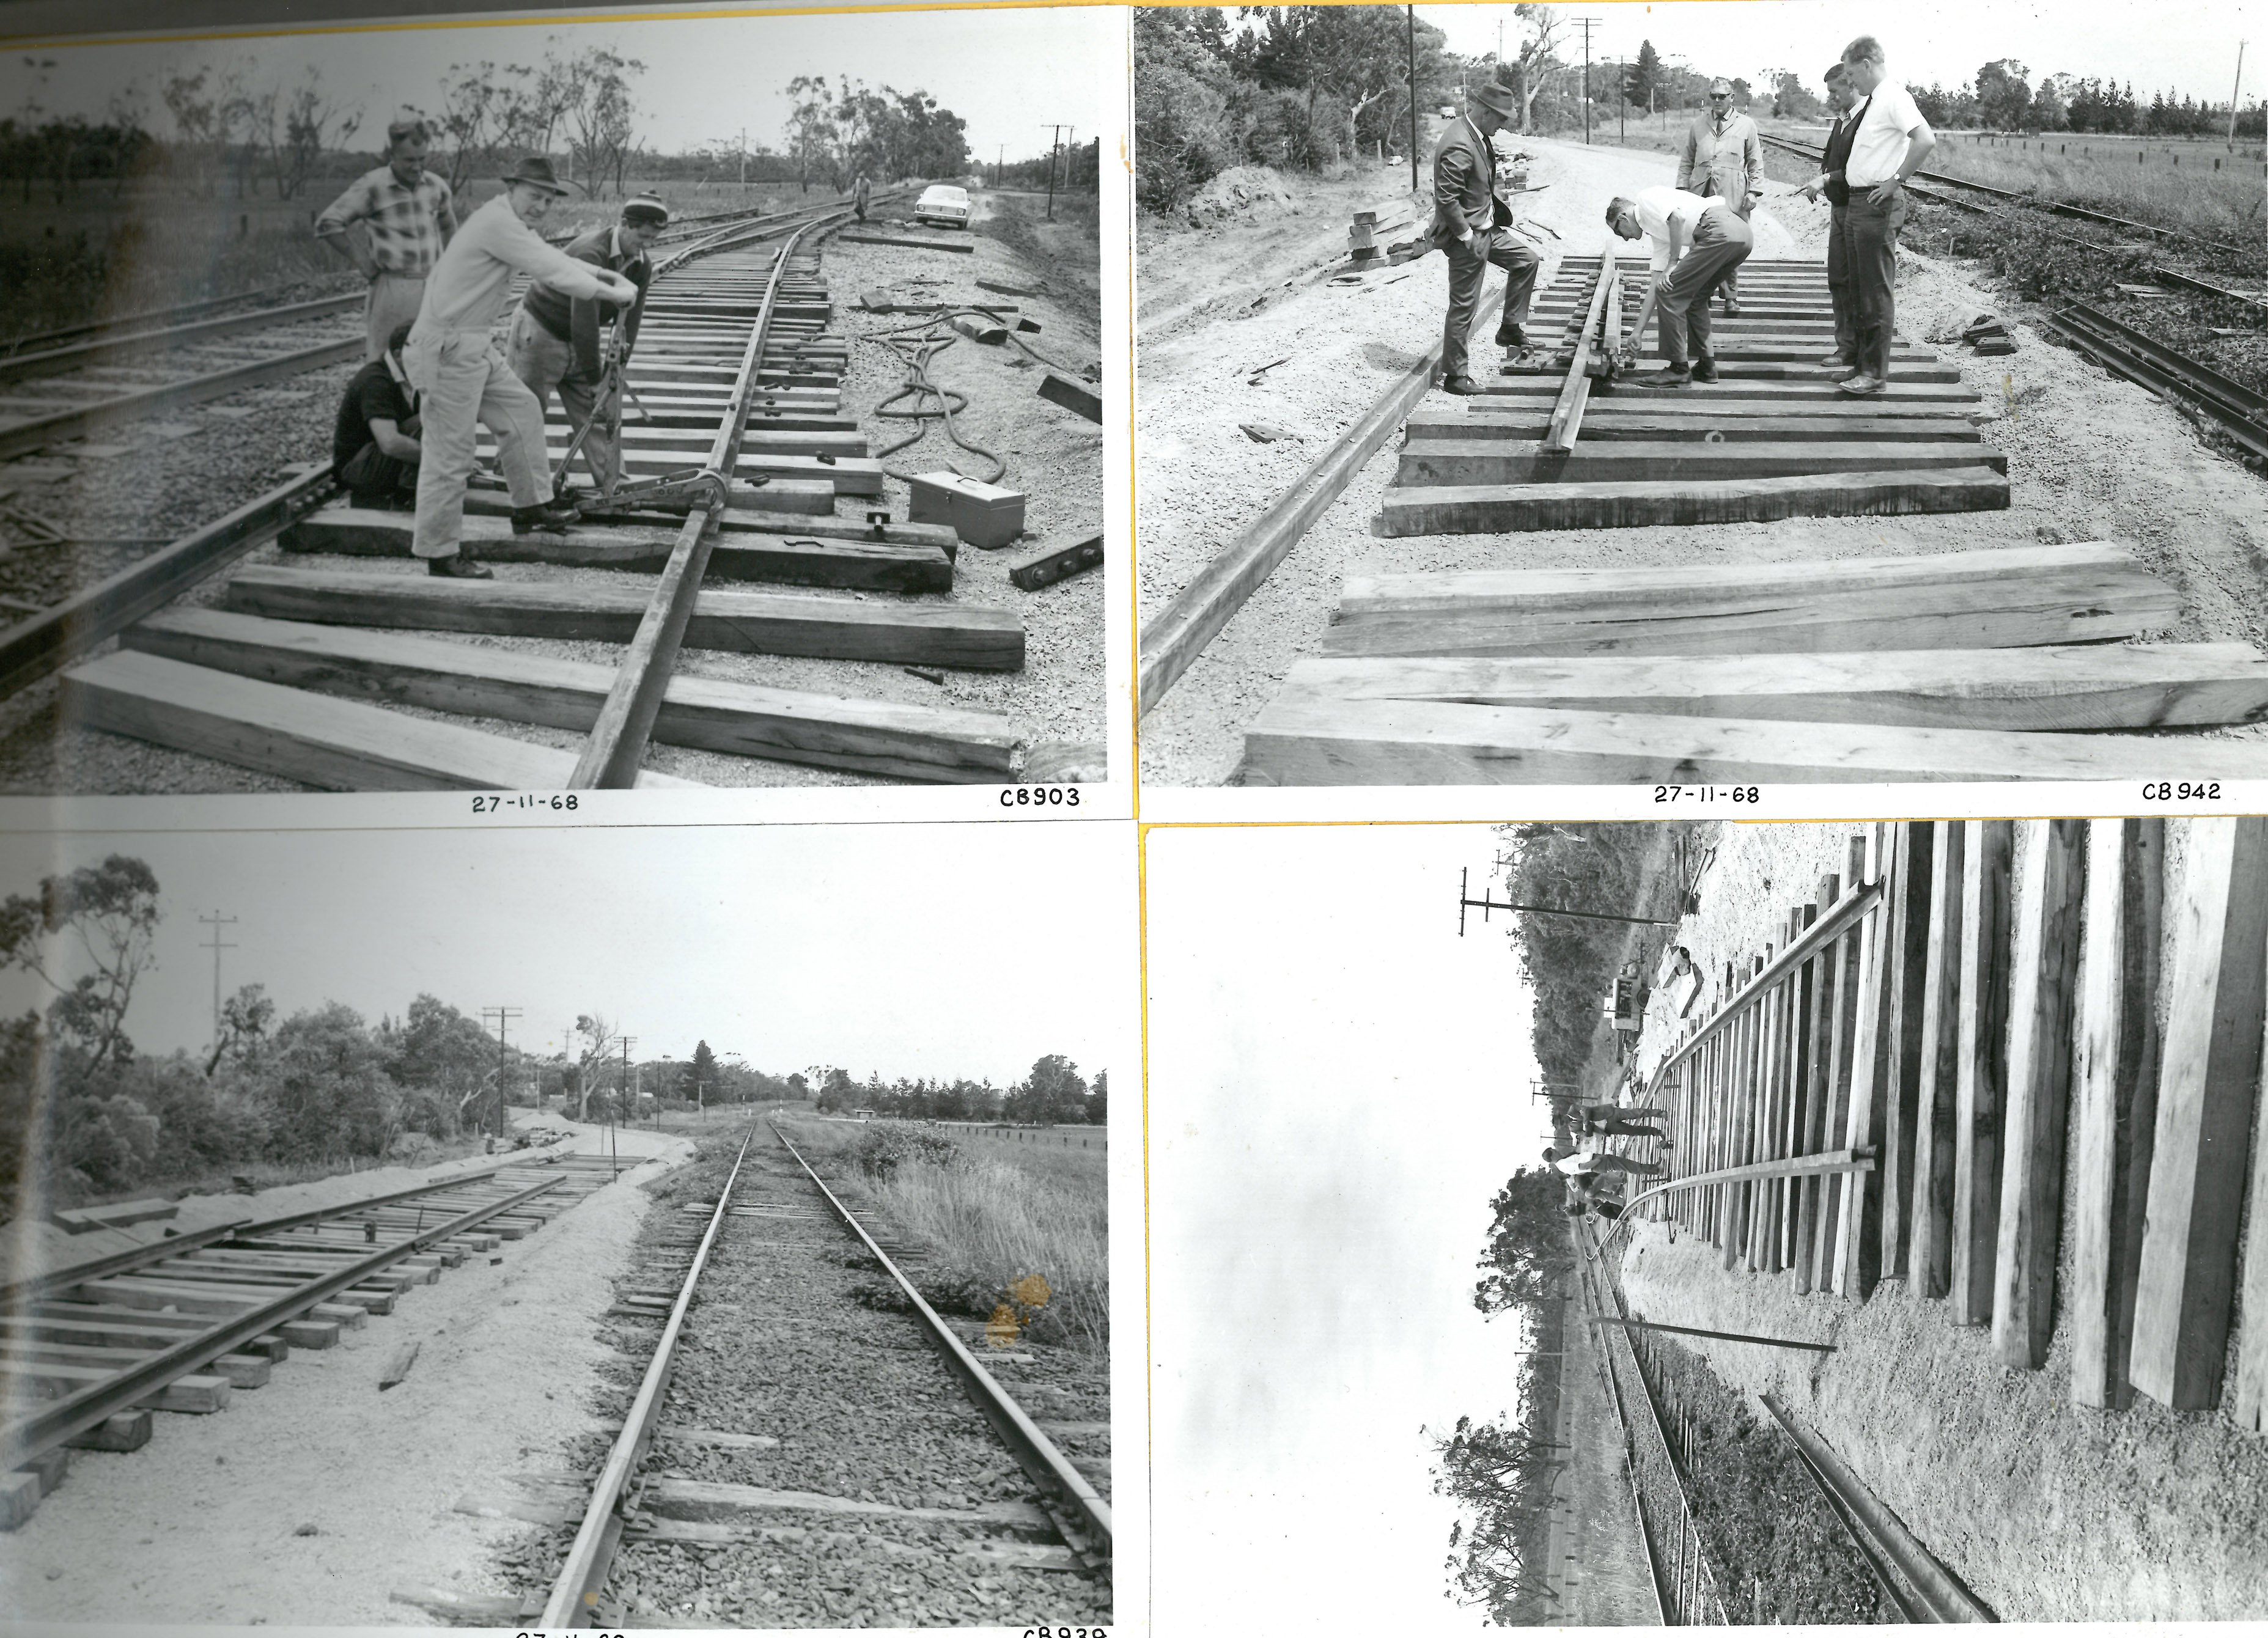 black and white photos of men working on tracks